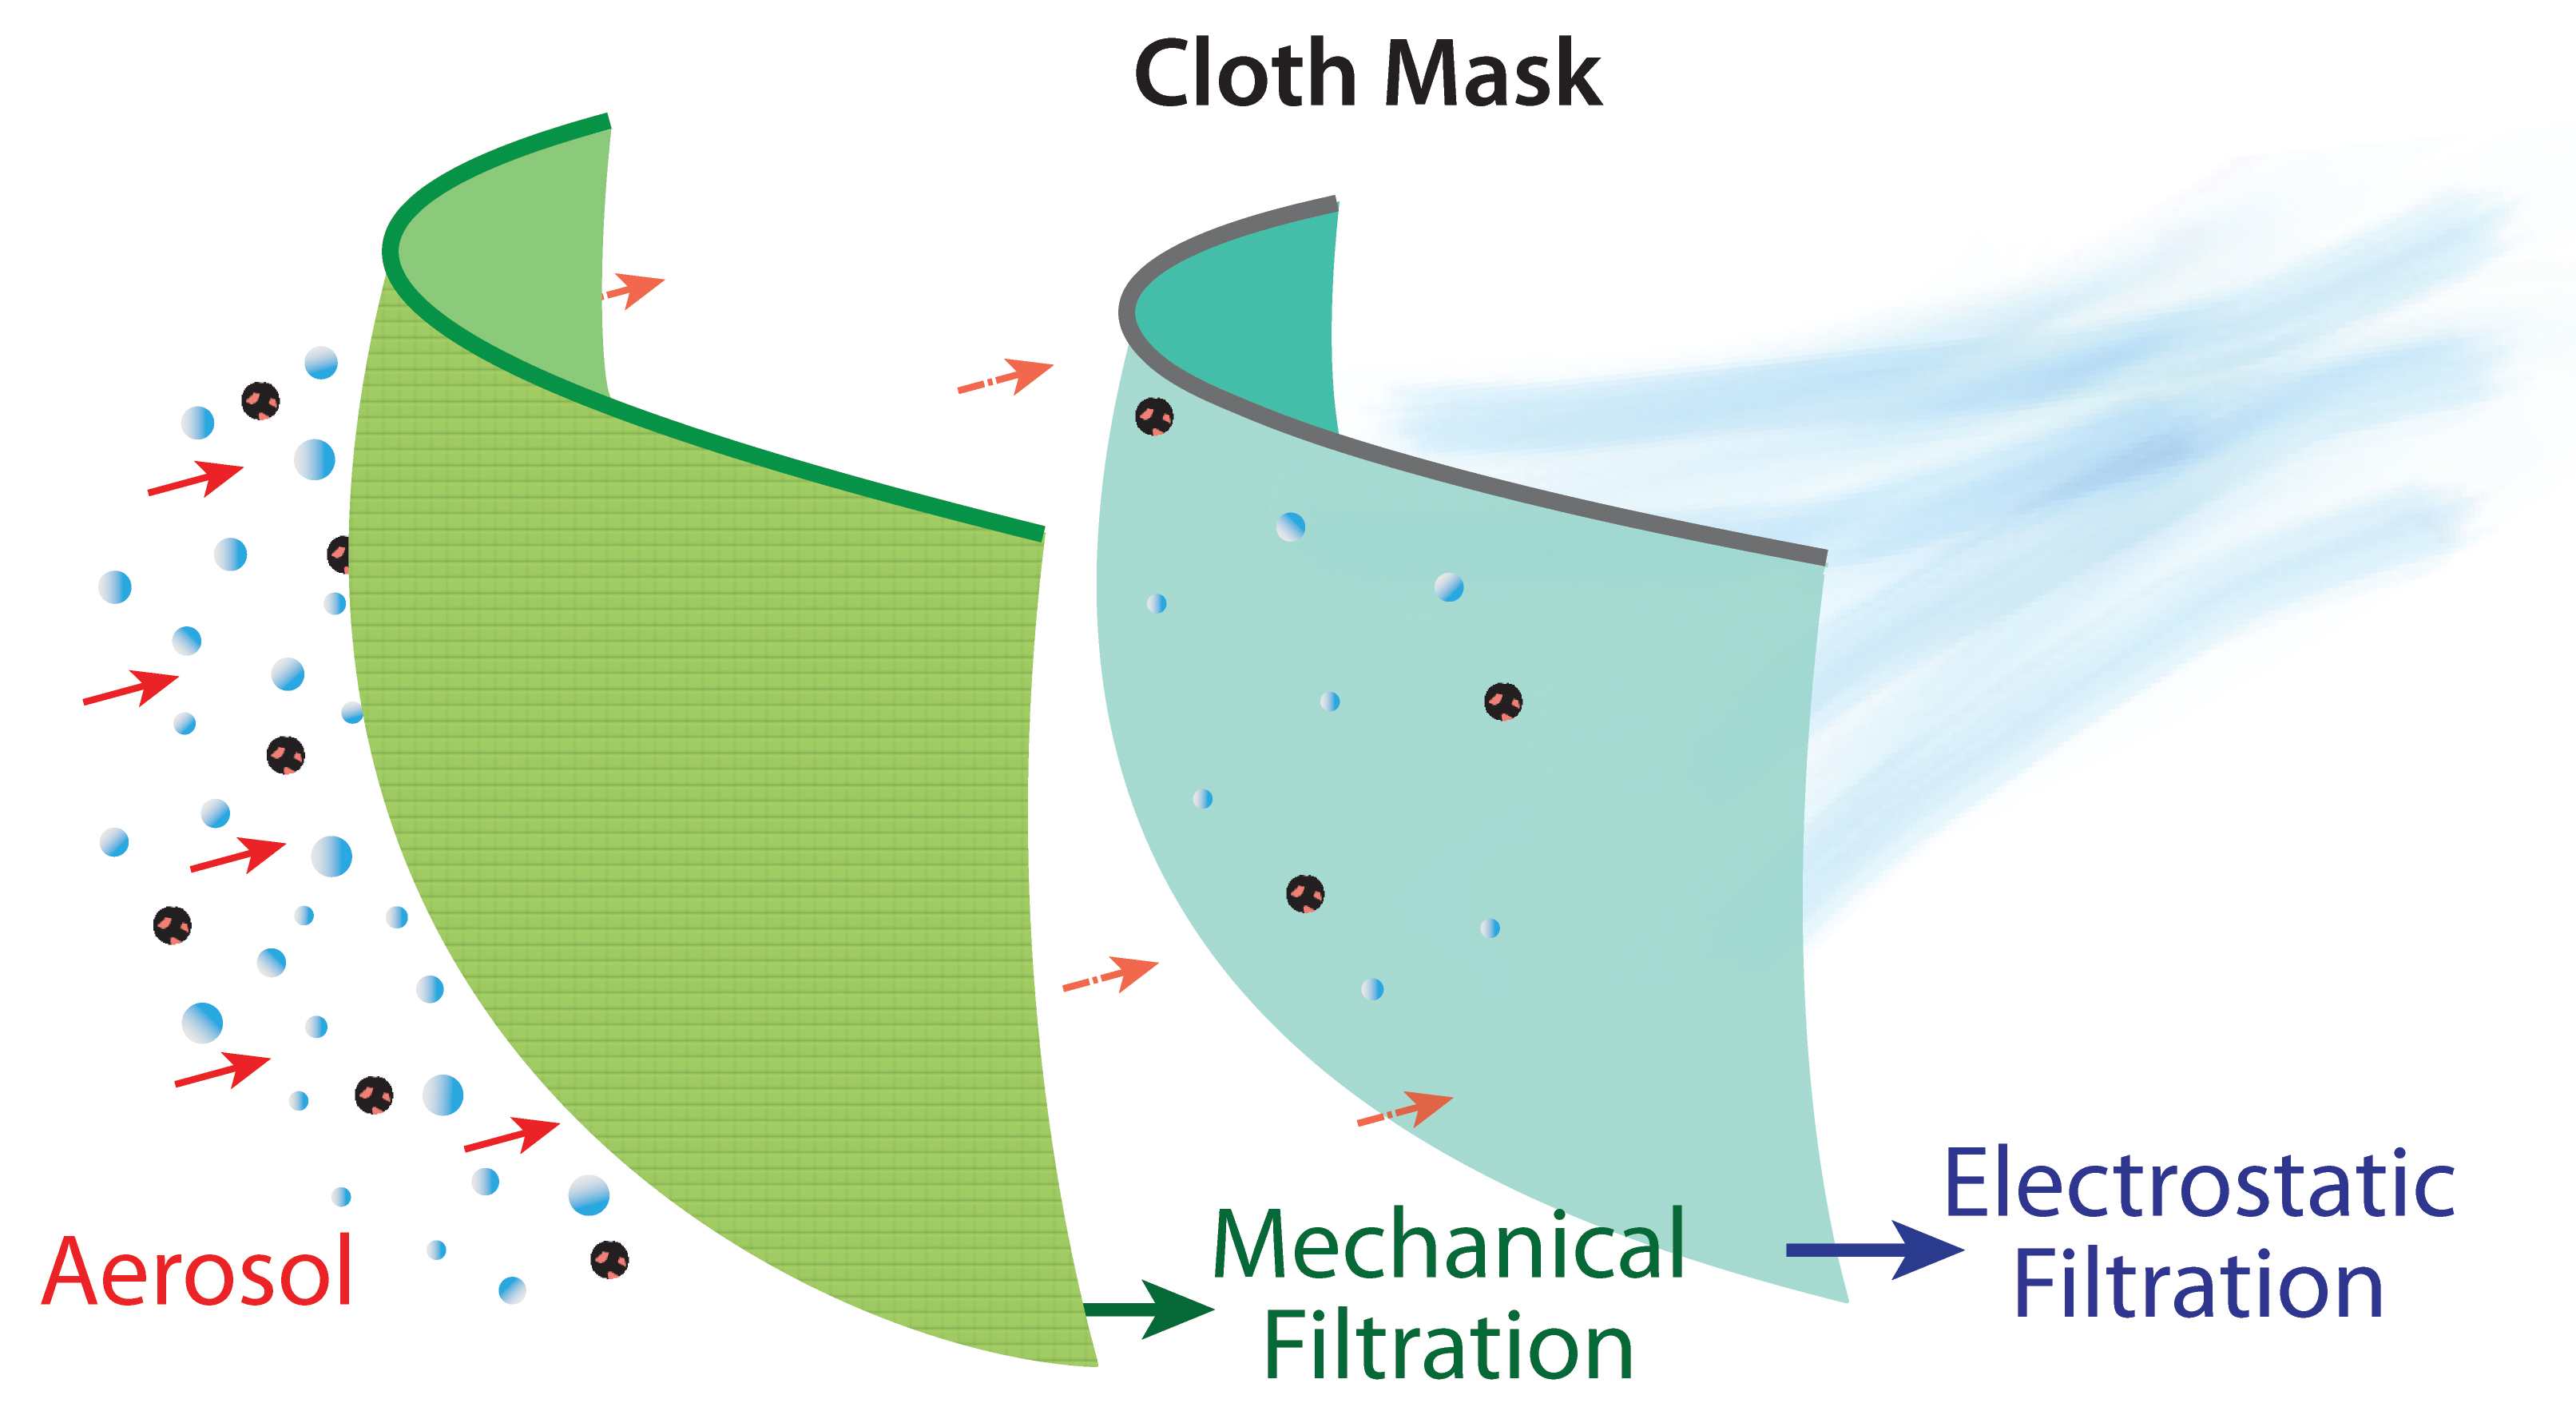 Cloth mask diagram of two layers and a flow of particles through the mask layers.